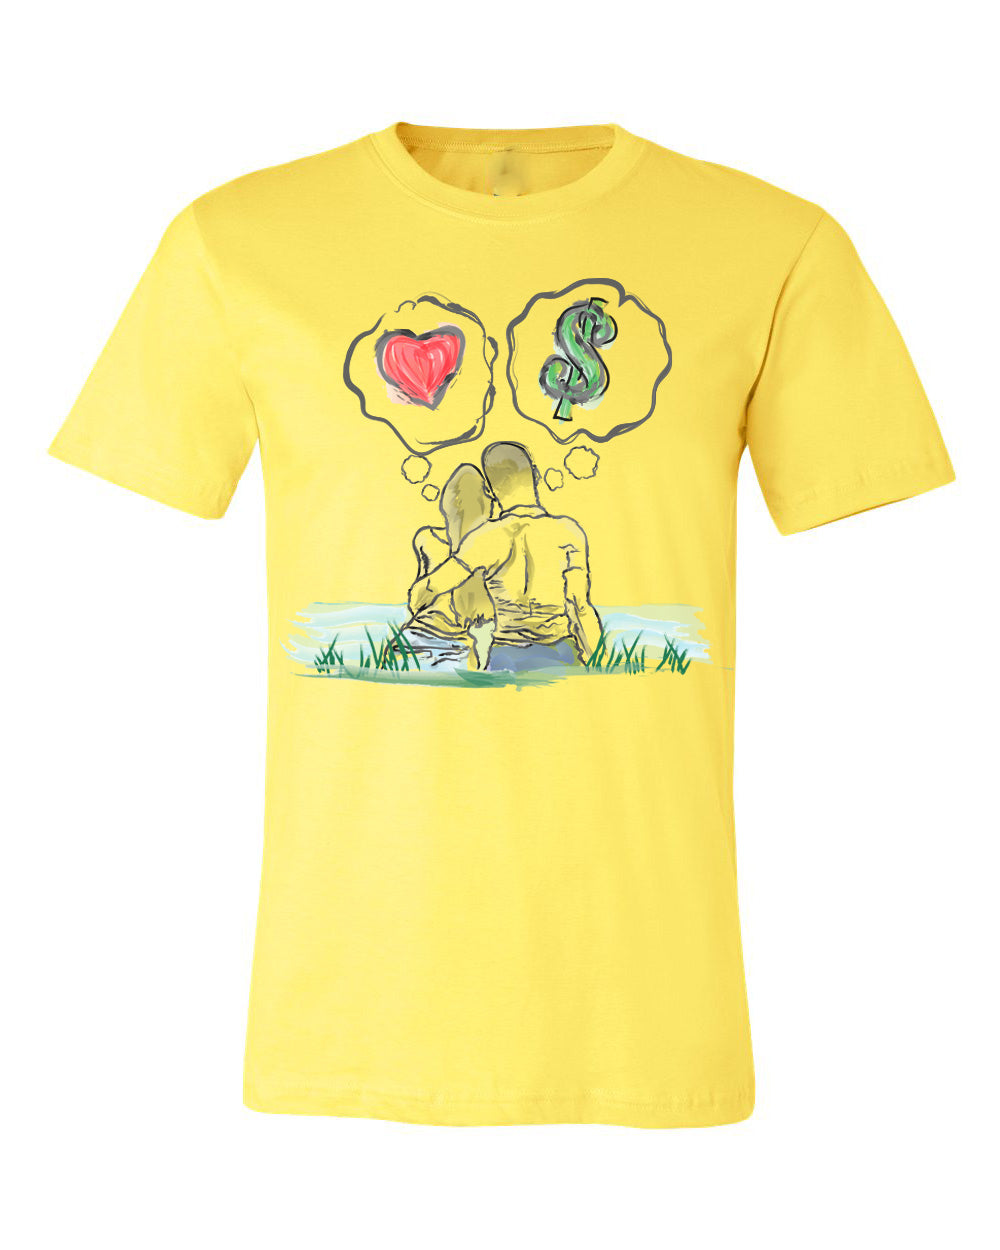 Guy Benson Collection Love Vs Money T-Shirt -Yellow